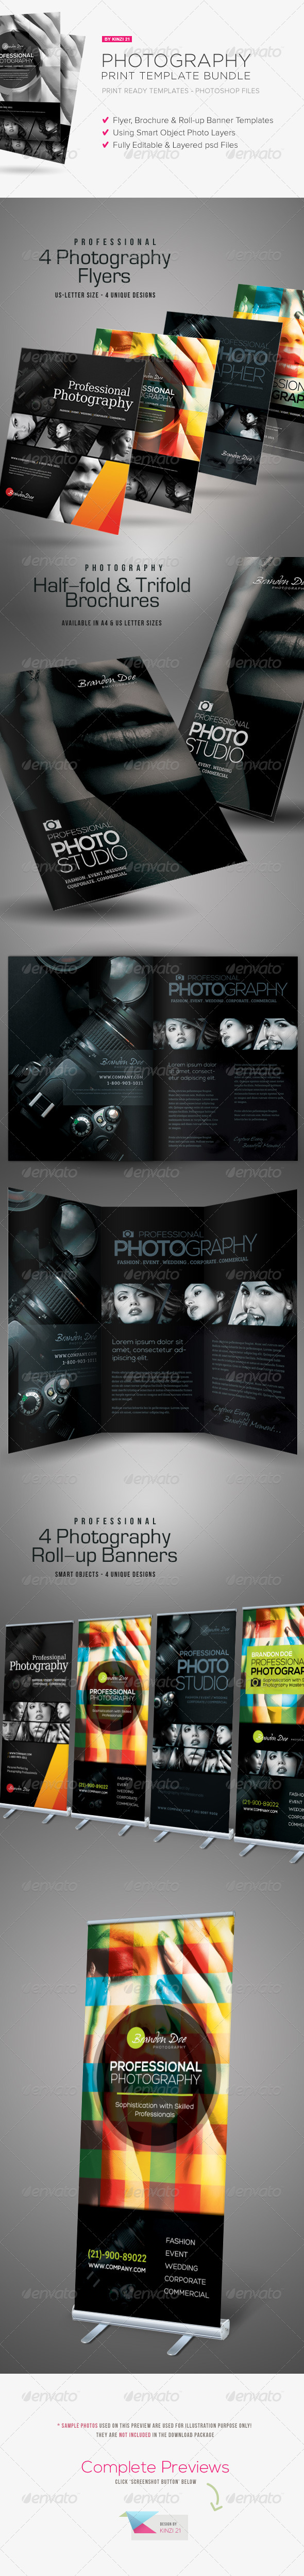 Photography Print Template Bundle - Corporate Flyers